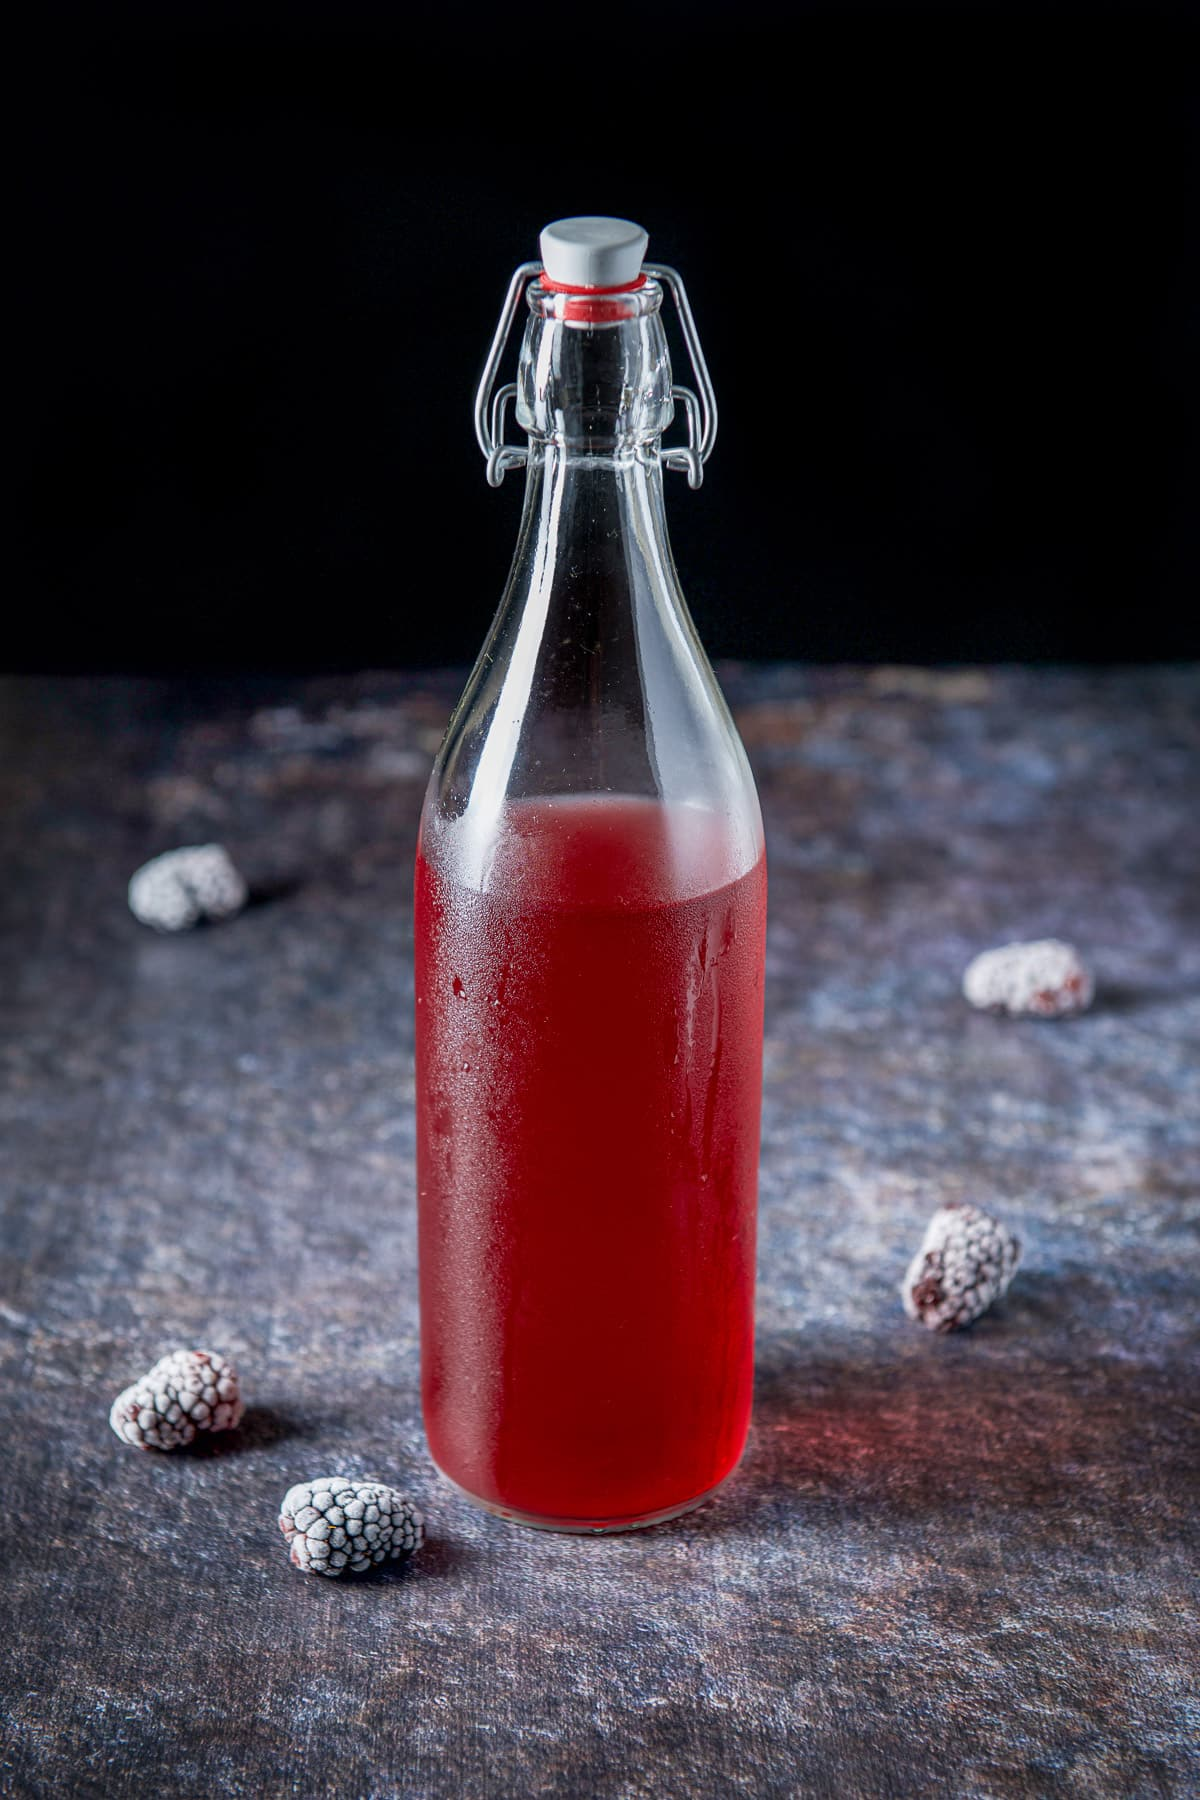 A table with frozen blackberries on it with a bottle of blackberry vodka